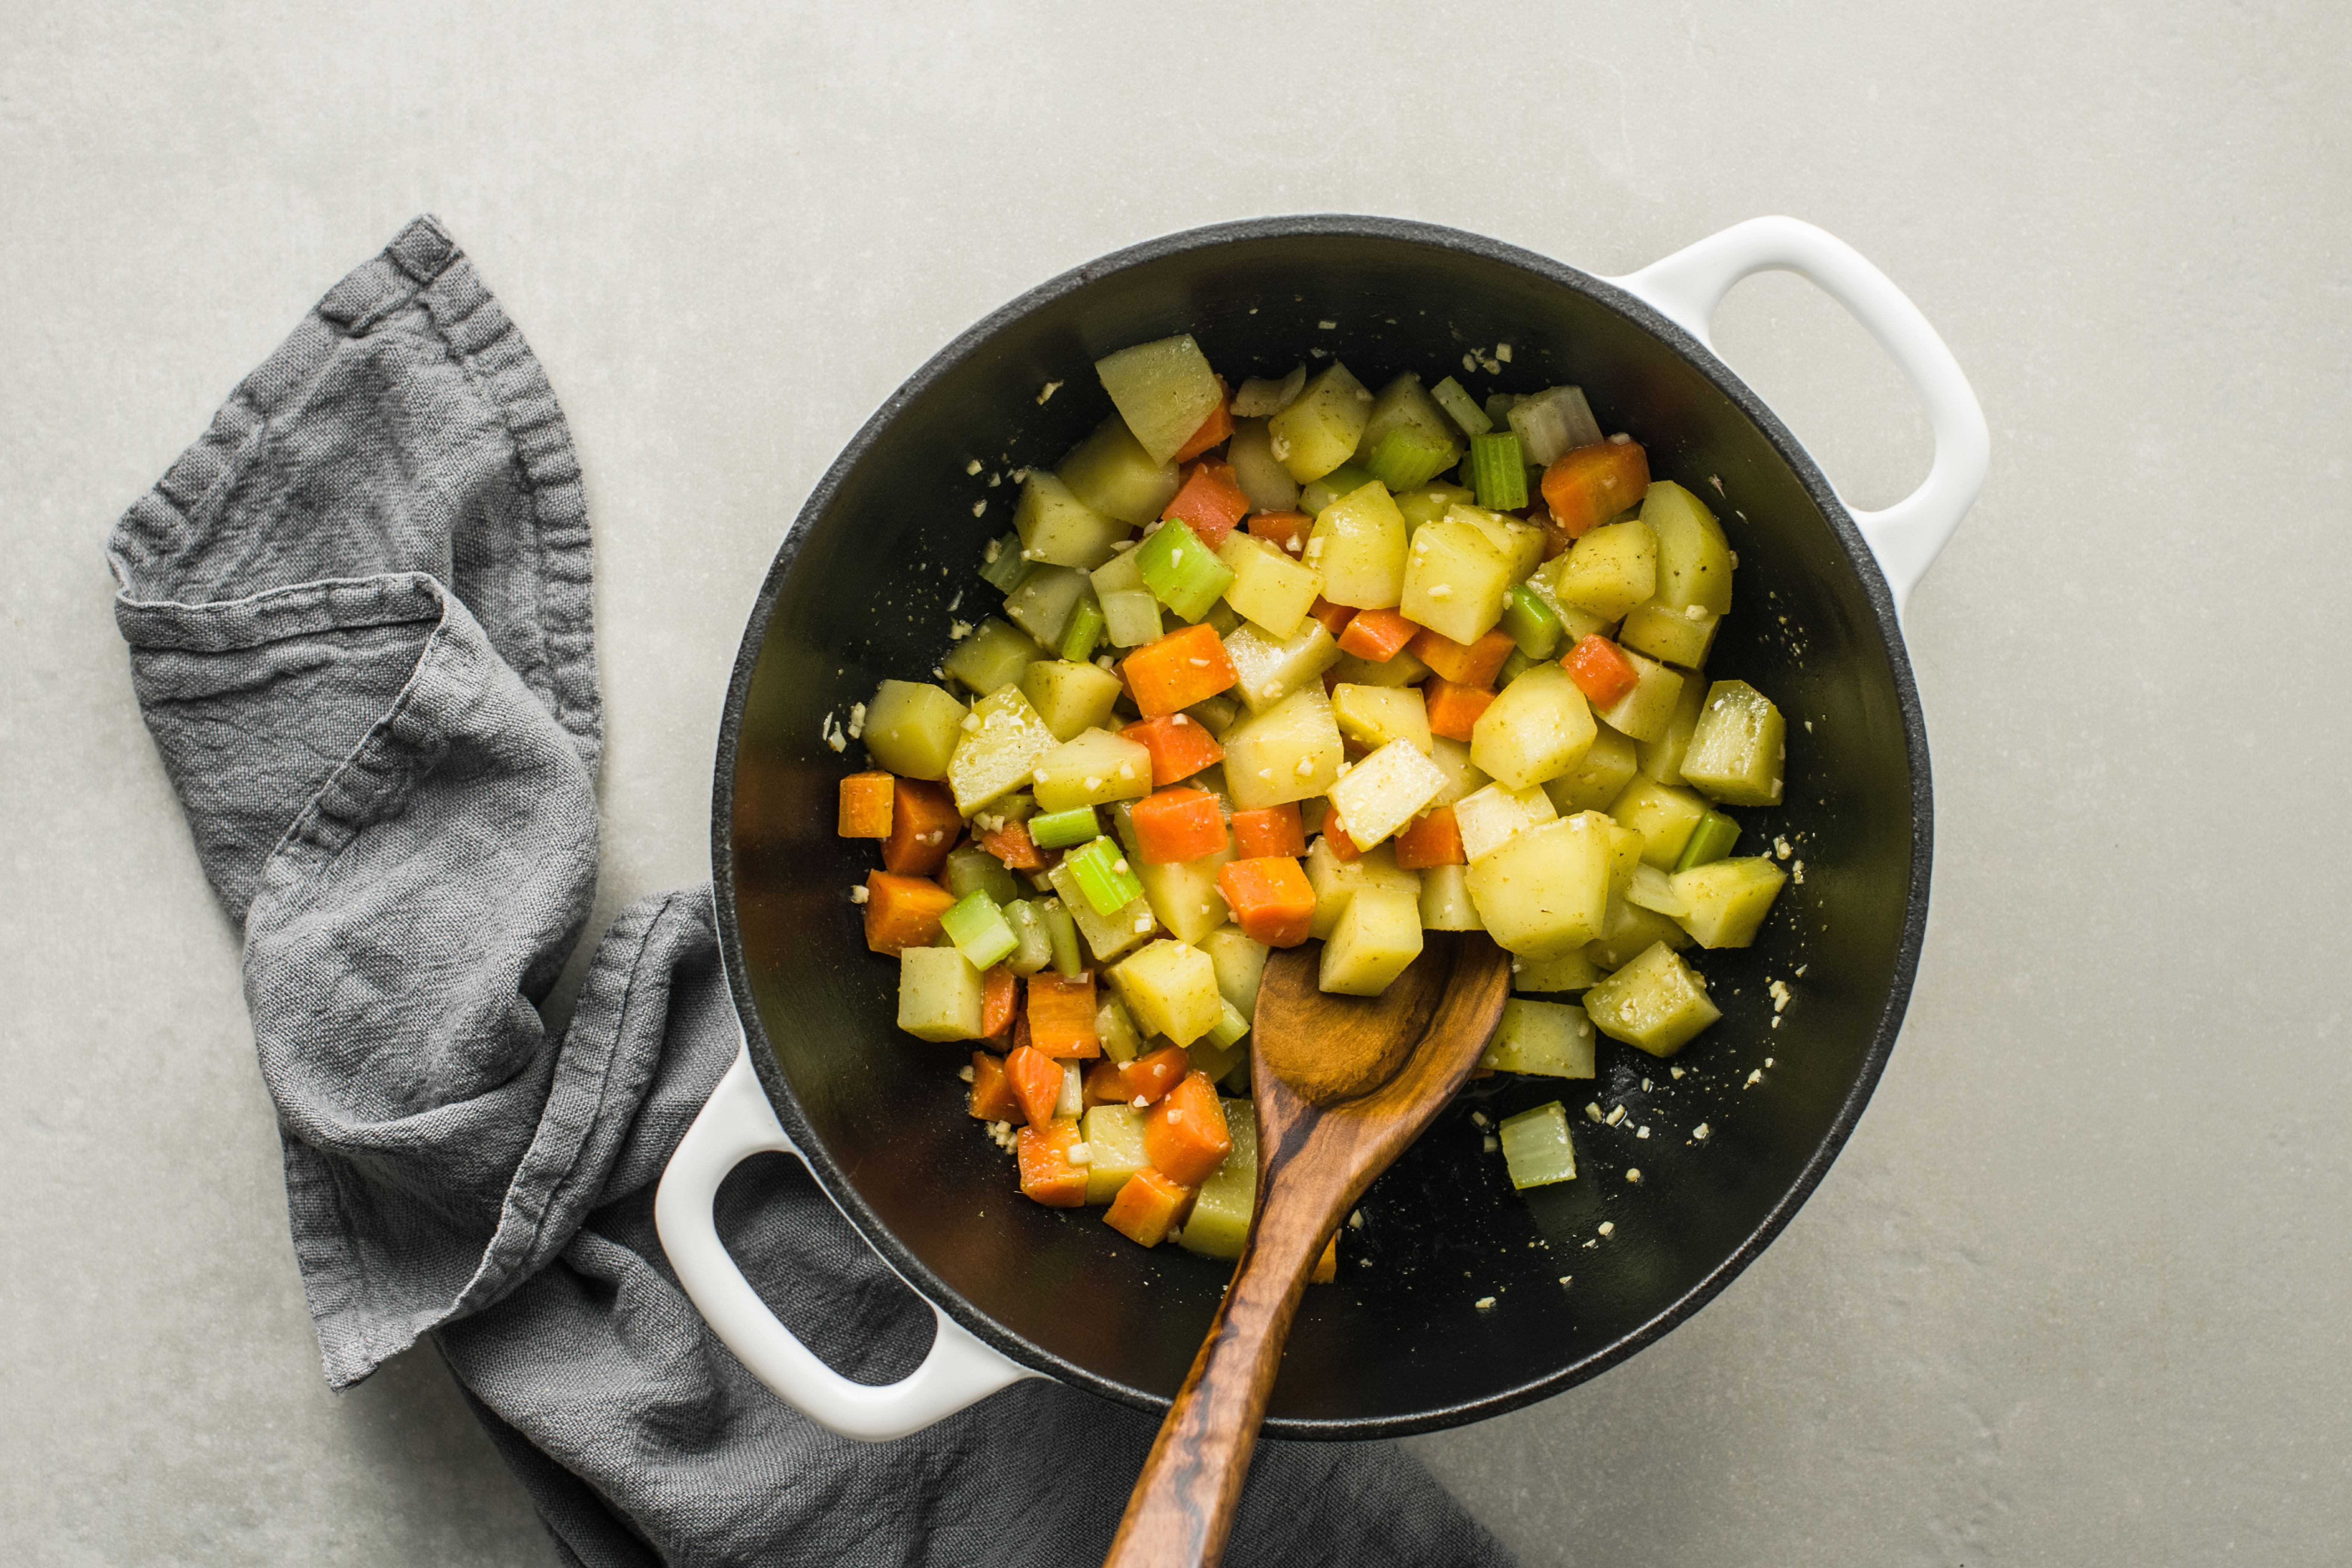 Vegetables in pot with wooden spoon